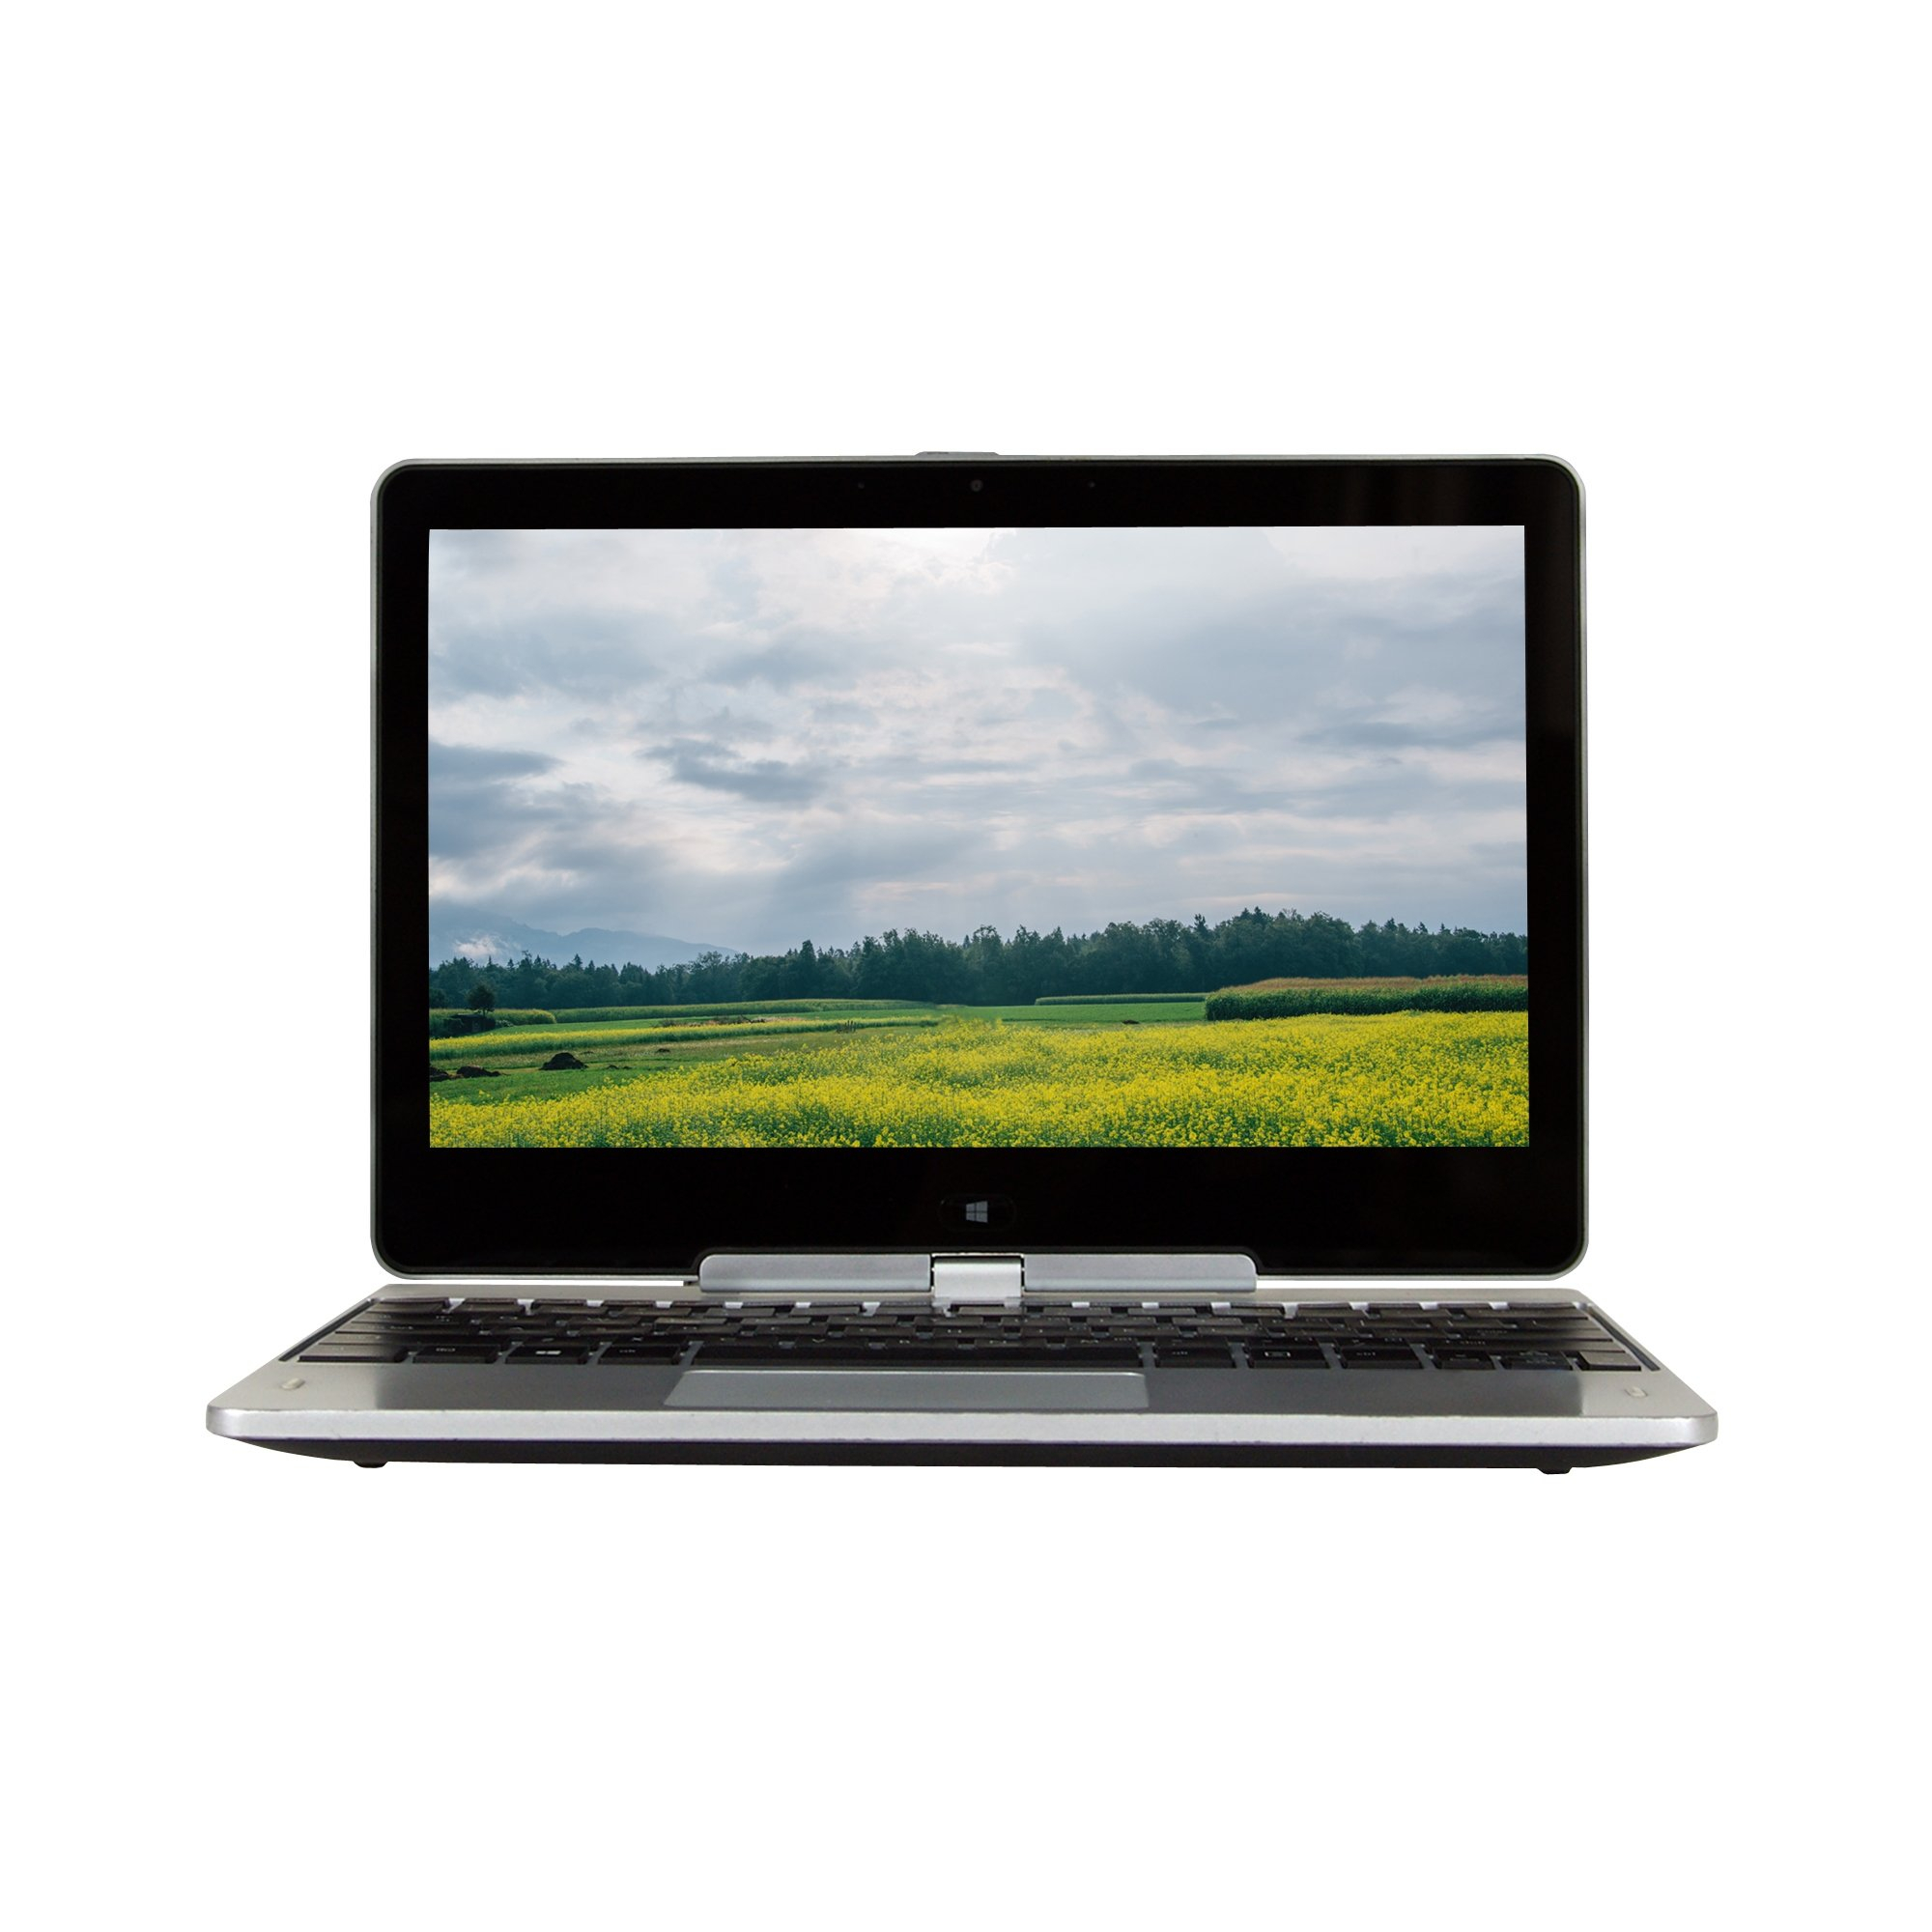 Shop Hp Elitebook Revolve 810 G3 Intel Core I7 5600U (View 15 of 23)